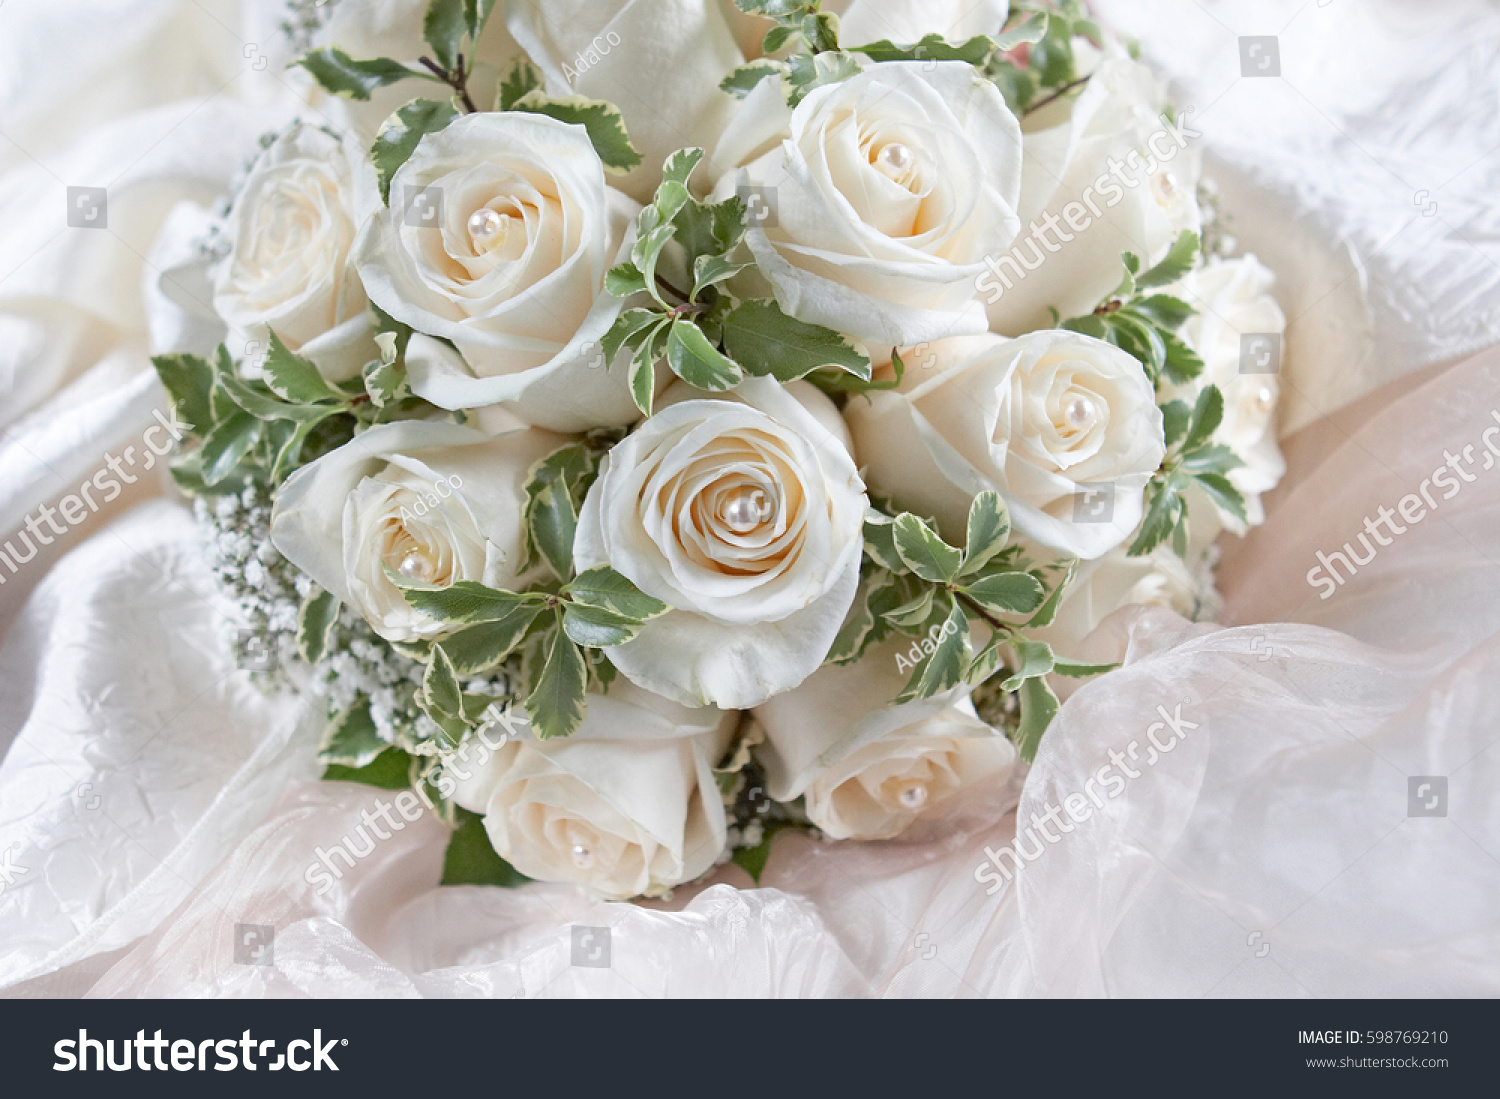 Wedding Bouquet Made Of White Roses On A Natural Background Ez Canvas